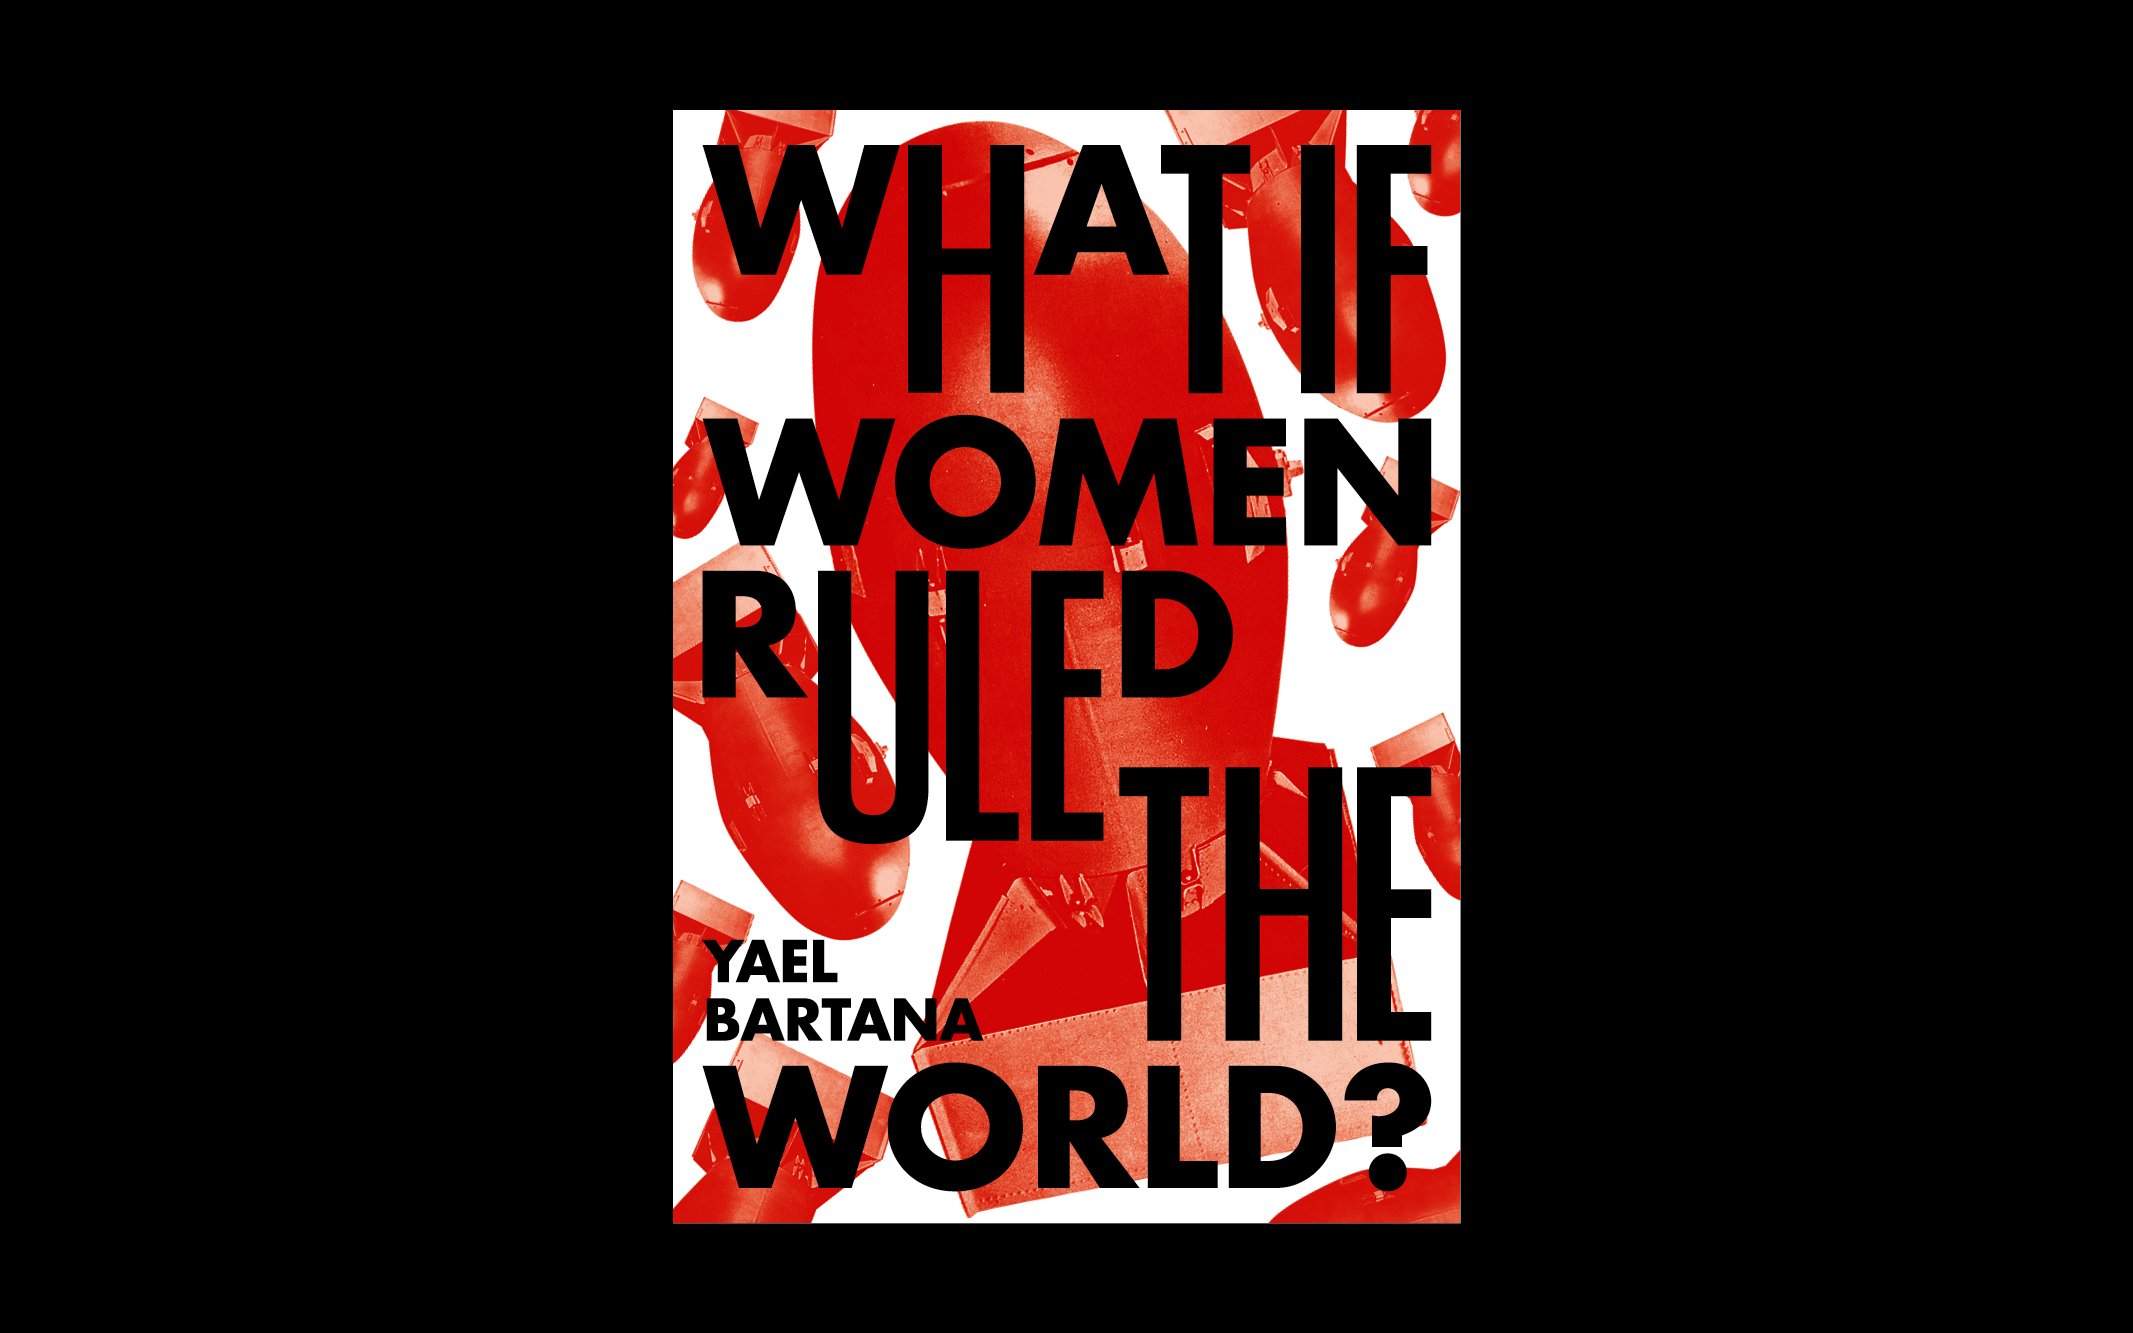 What If Women Ruled the World, In Collaboration with Gila Kaplan